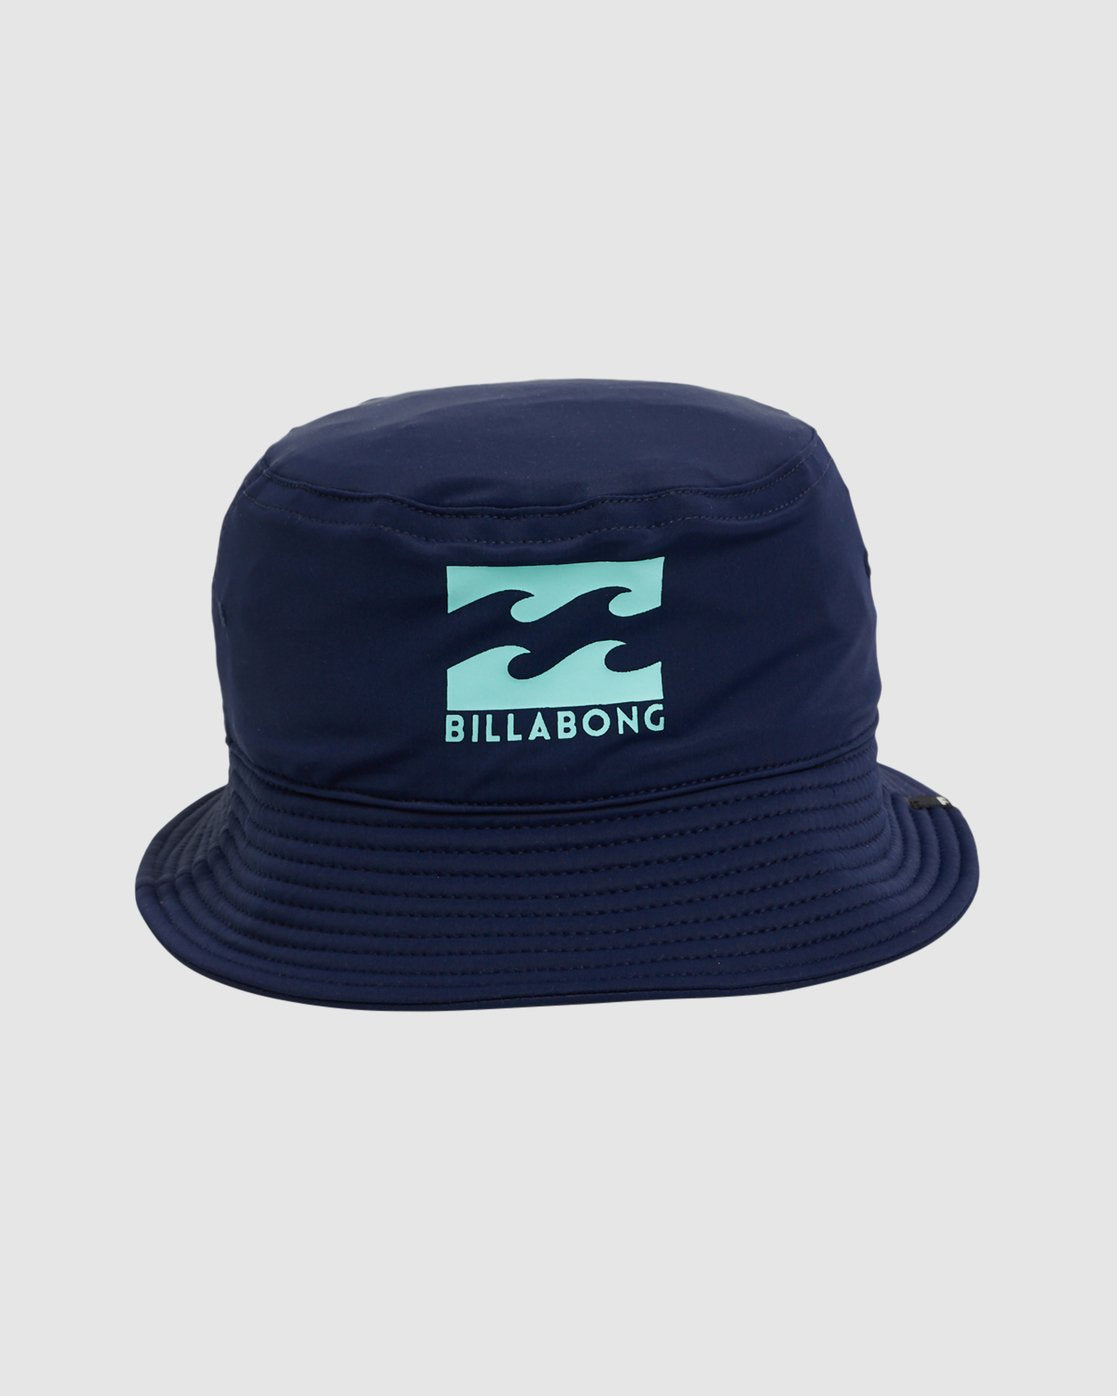 Groms Beach Day Bucket Hat